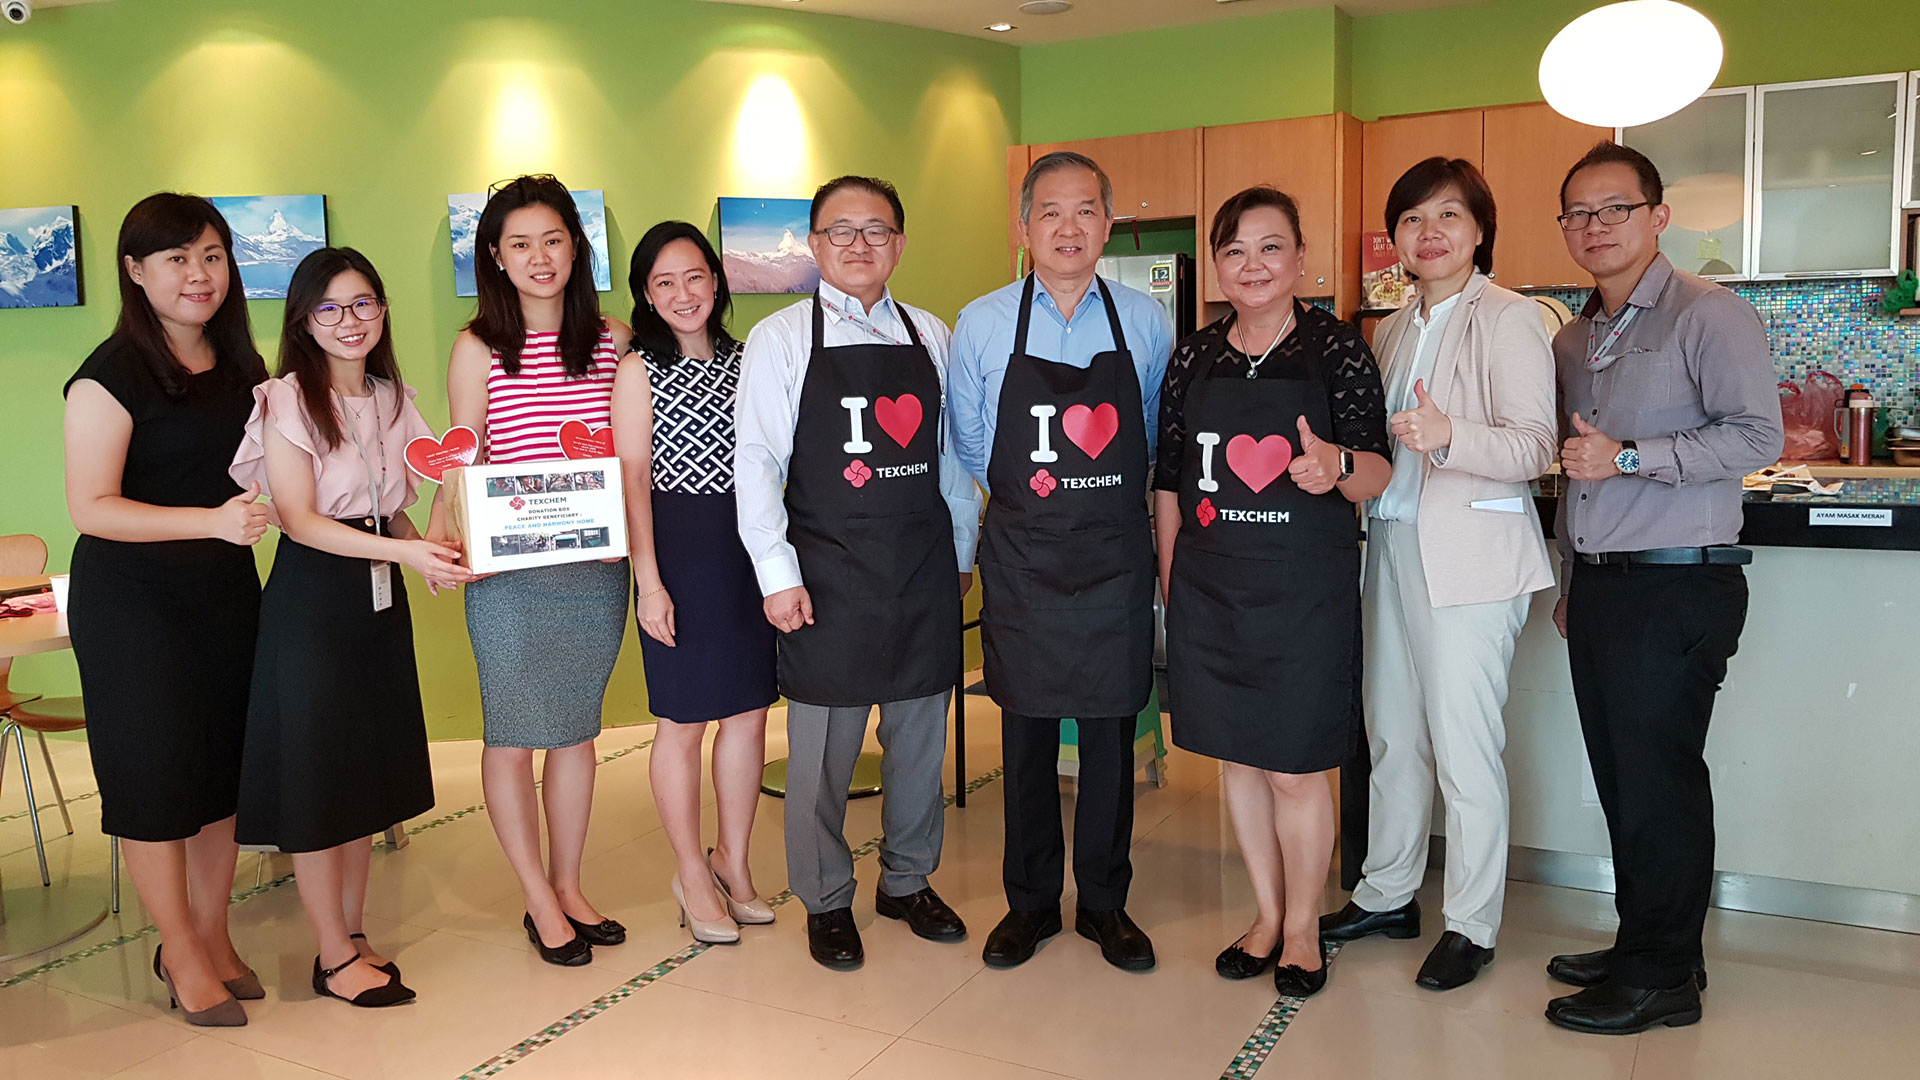 Come Dine With Me – A Fund Raising Initiative by Texchem's Cultural Ambassadors